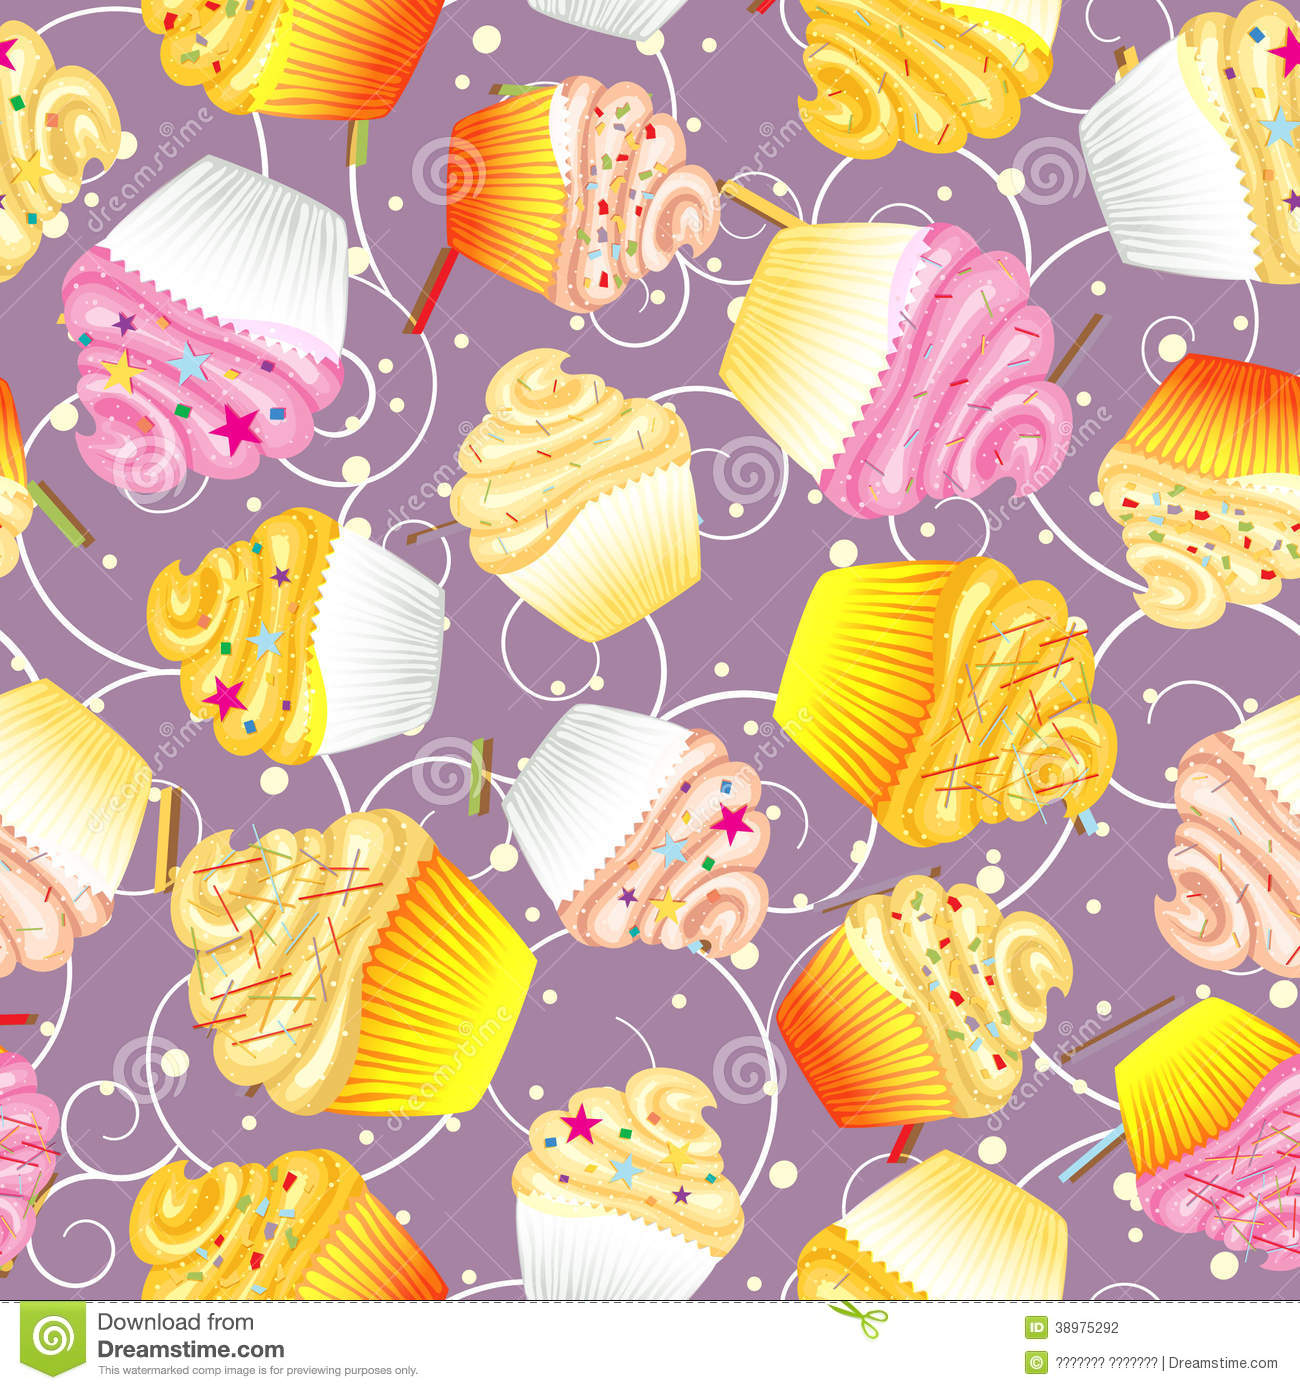 Cute Dessert Wallpaper Seamless Background Of Cupcakes With Cream Stock Vector